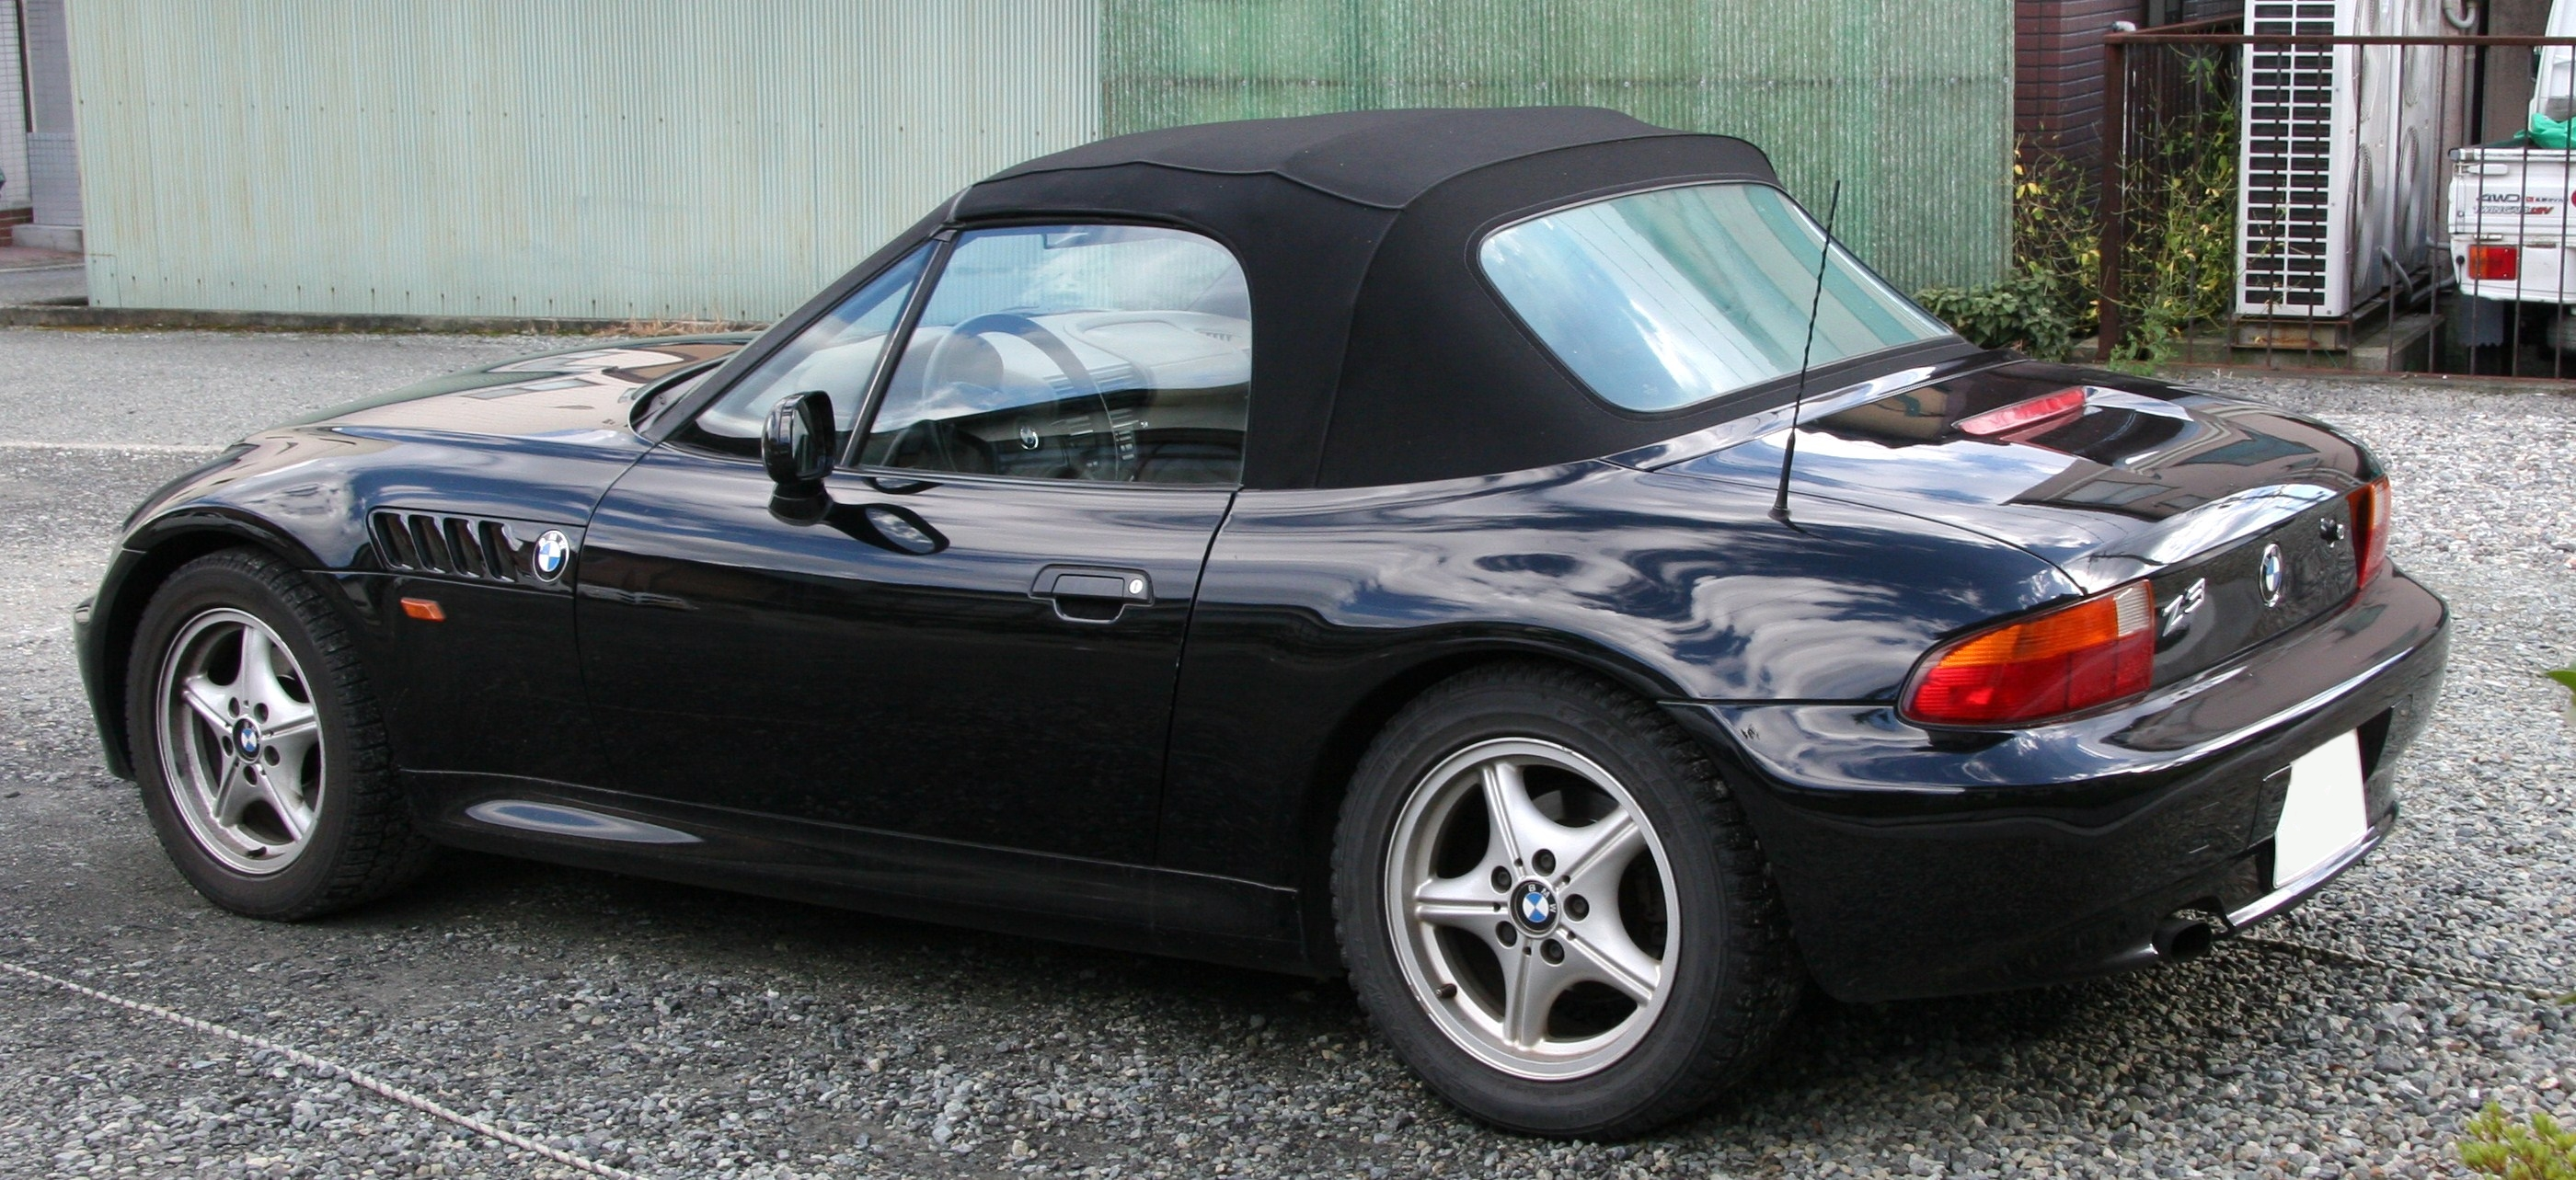 1998 bmw z3 information and photos zombiedrive. Black Bedroom Furniture Sets. Home Design Ideas